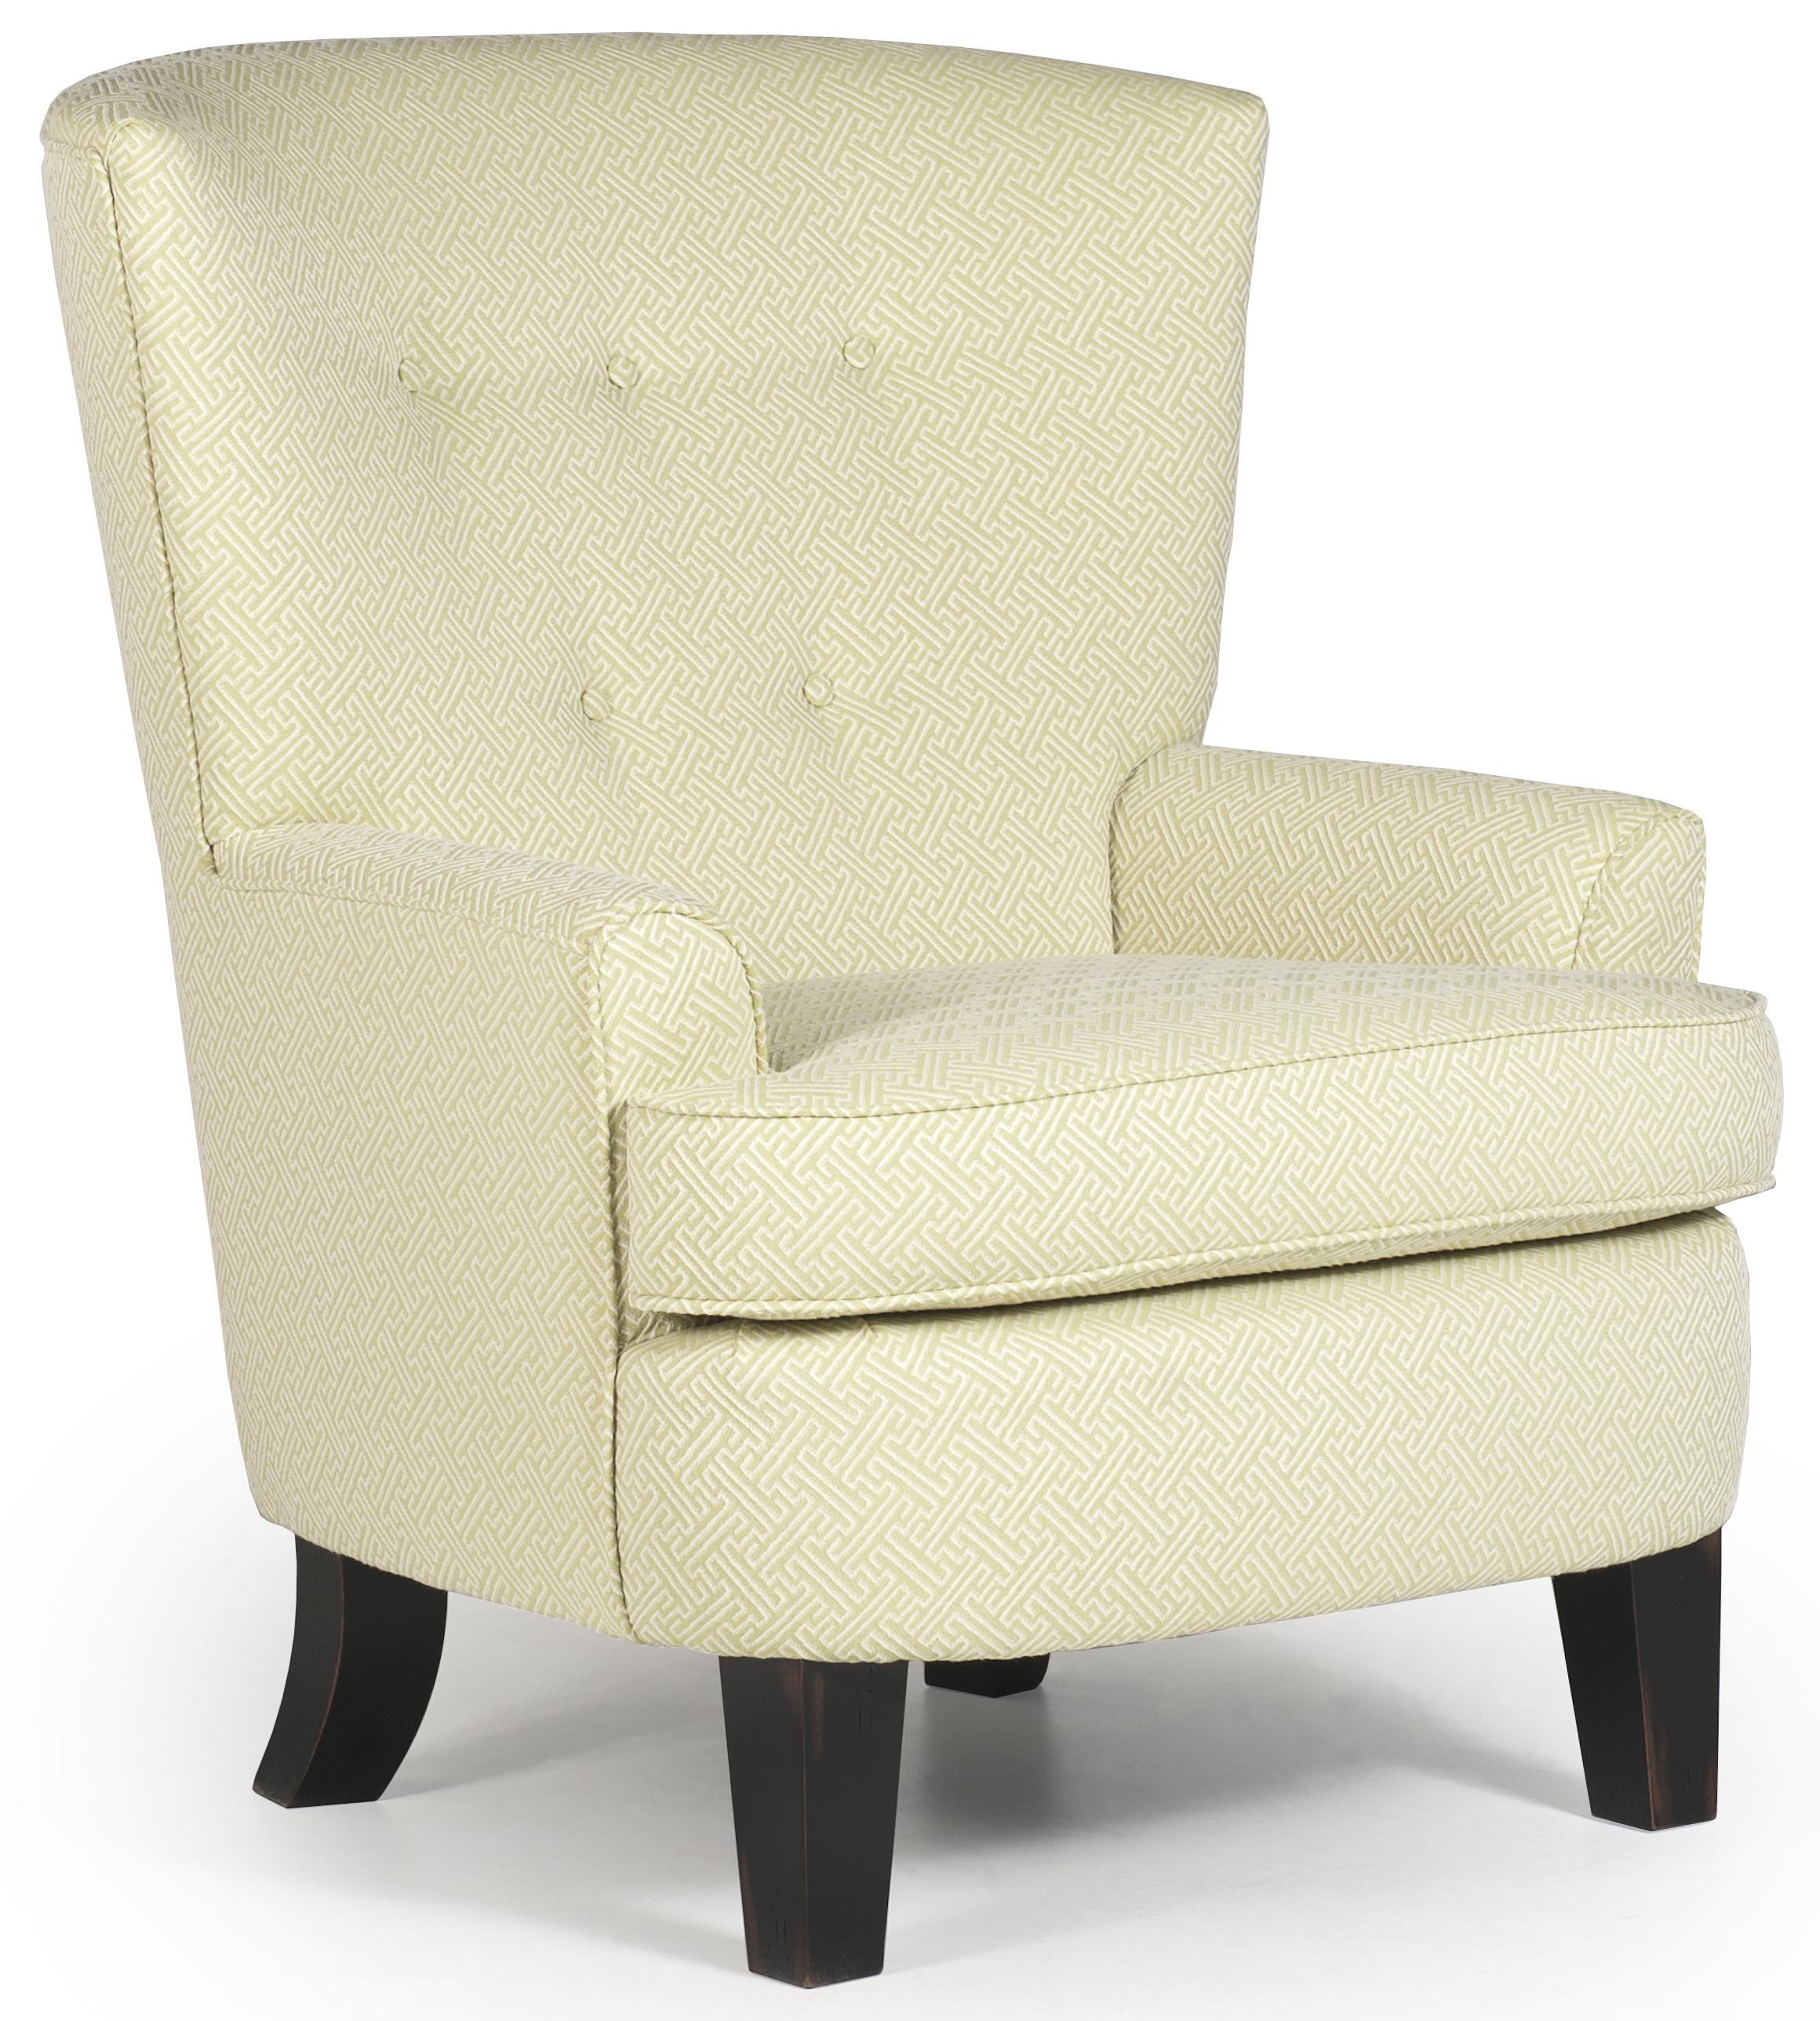 Best Home Furnishings Chairs - Club Luis Club Chair - Item Number: 7120AB